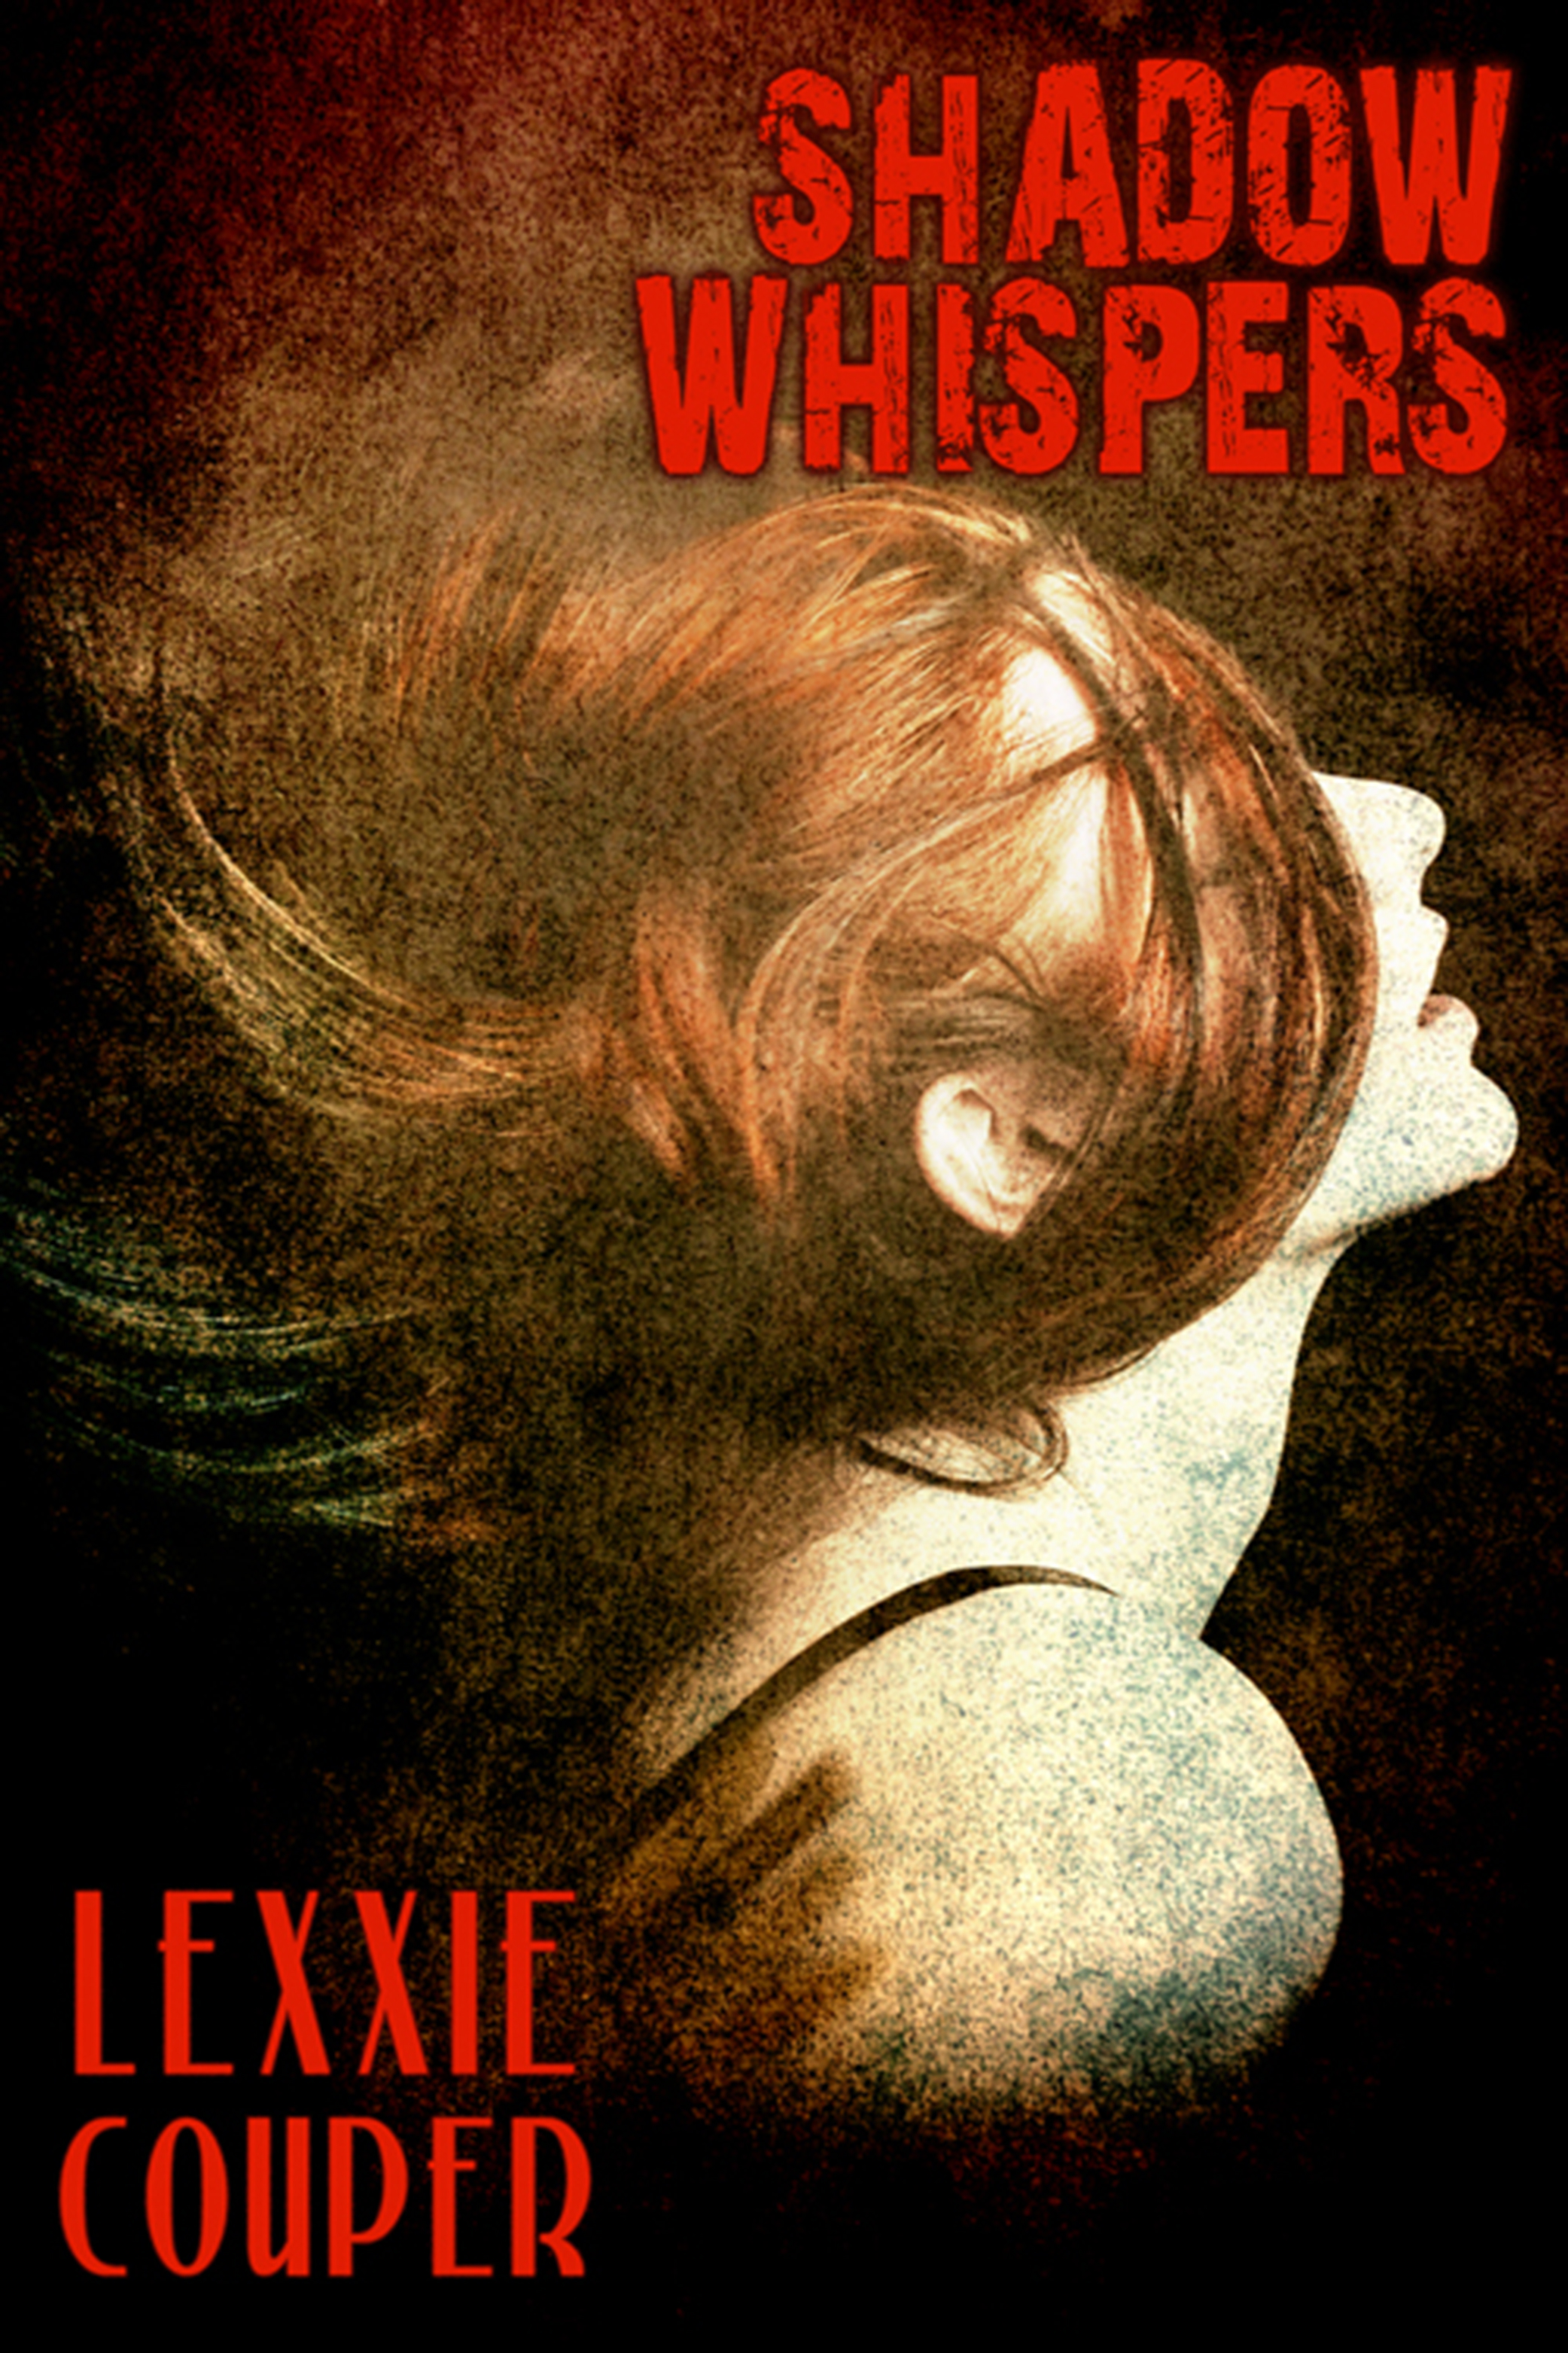 COVER REVEAL: SHADOW WHISPERS by Lexxie Couper